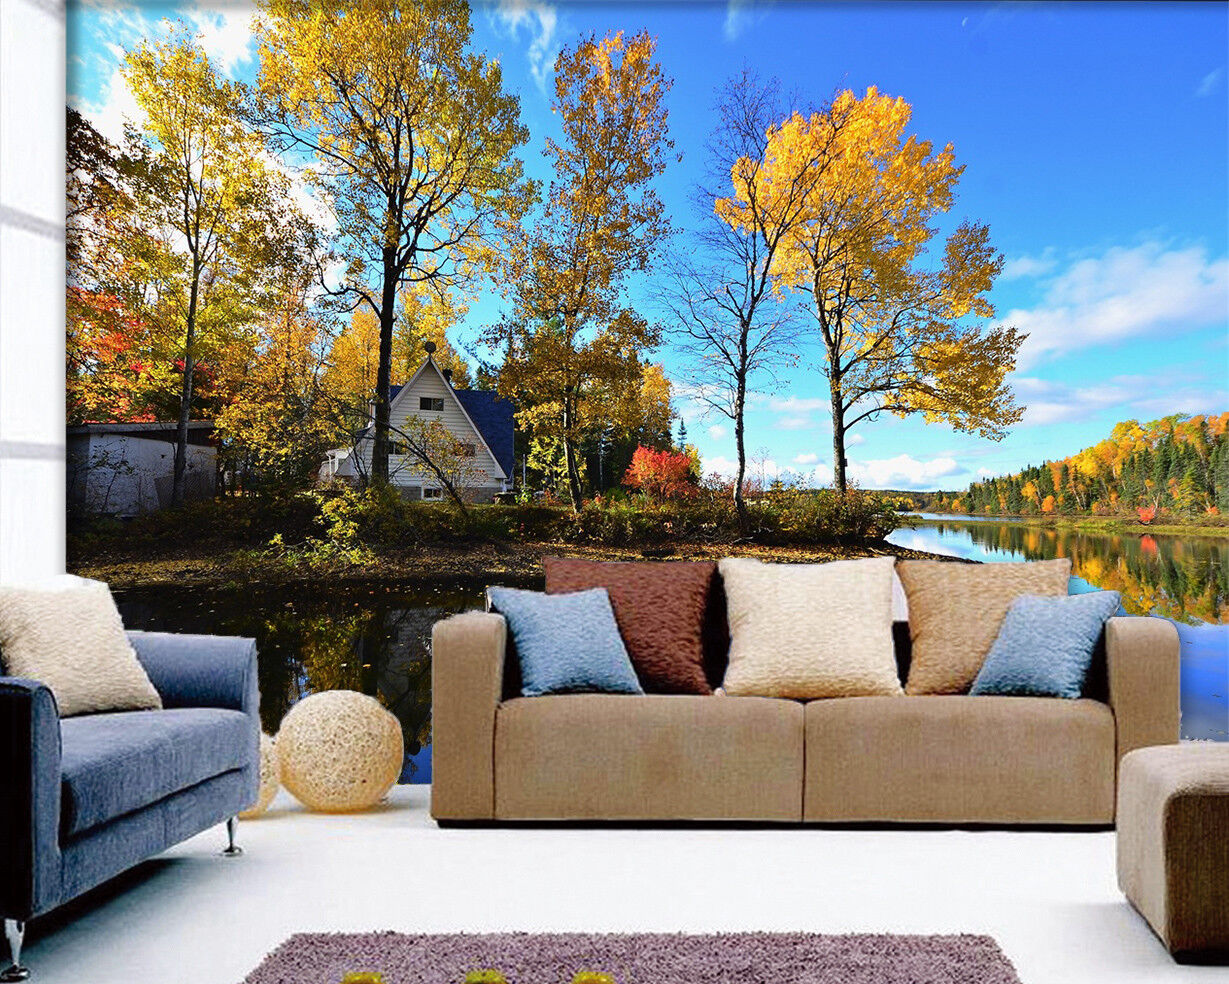 3D River Tree Sky 59 Wallpaper Murals Wall Print Wallpaper Mural AJ WALLPAPER UK